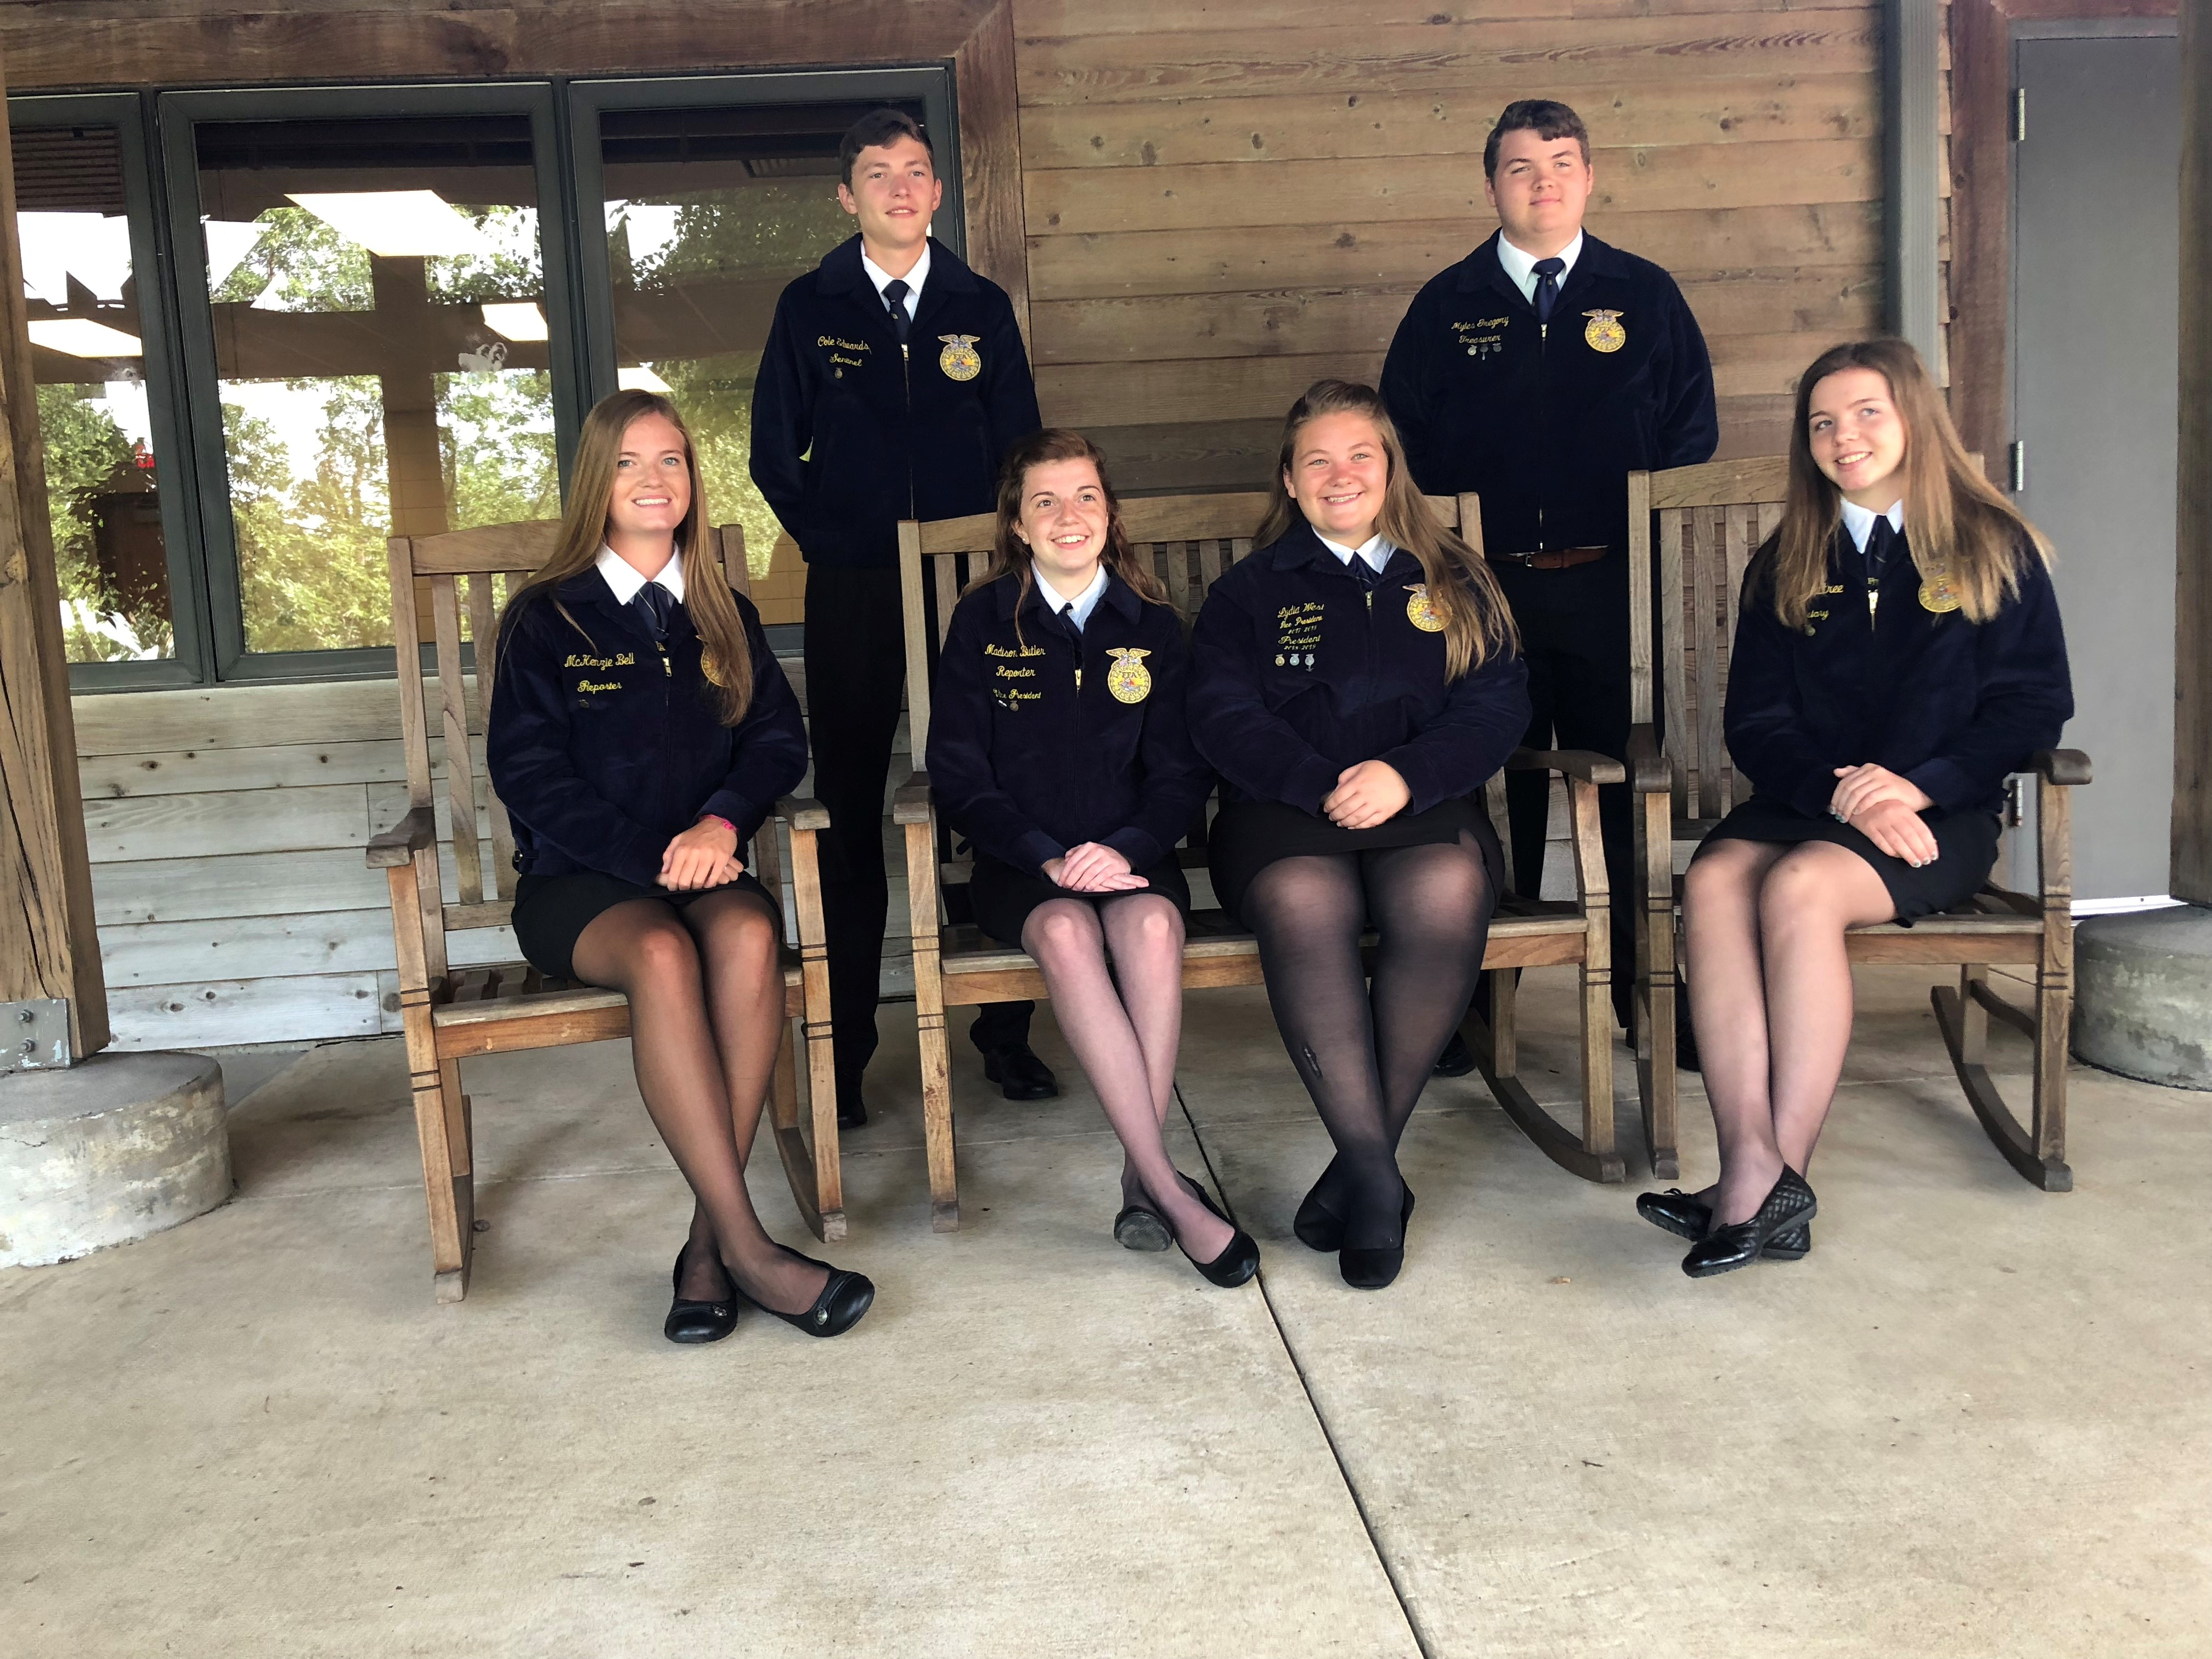 (l-r) The officers of FFA: McKenzie Bell, Cole Edwards, Madison Butler, Lydia West, Myles Gregory, and Mackenzie Crabtree